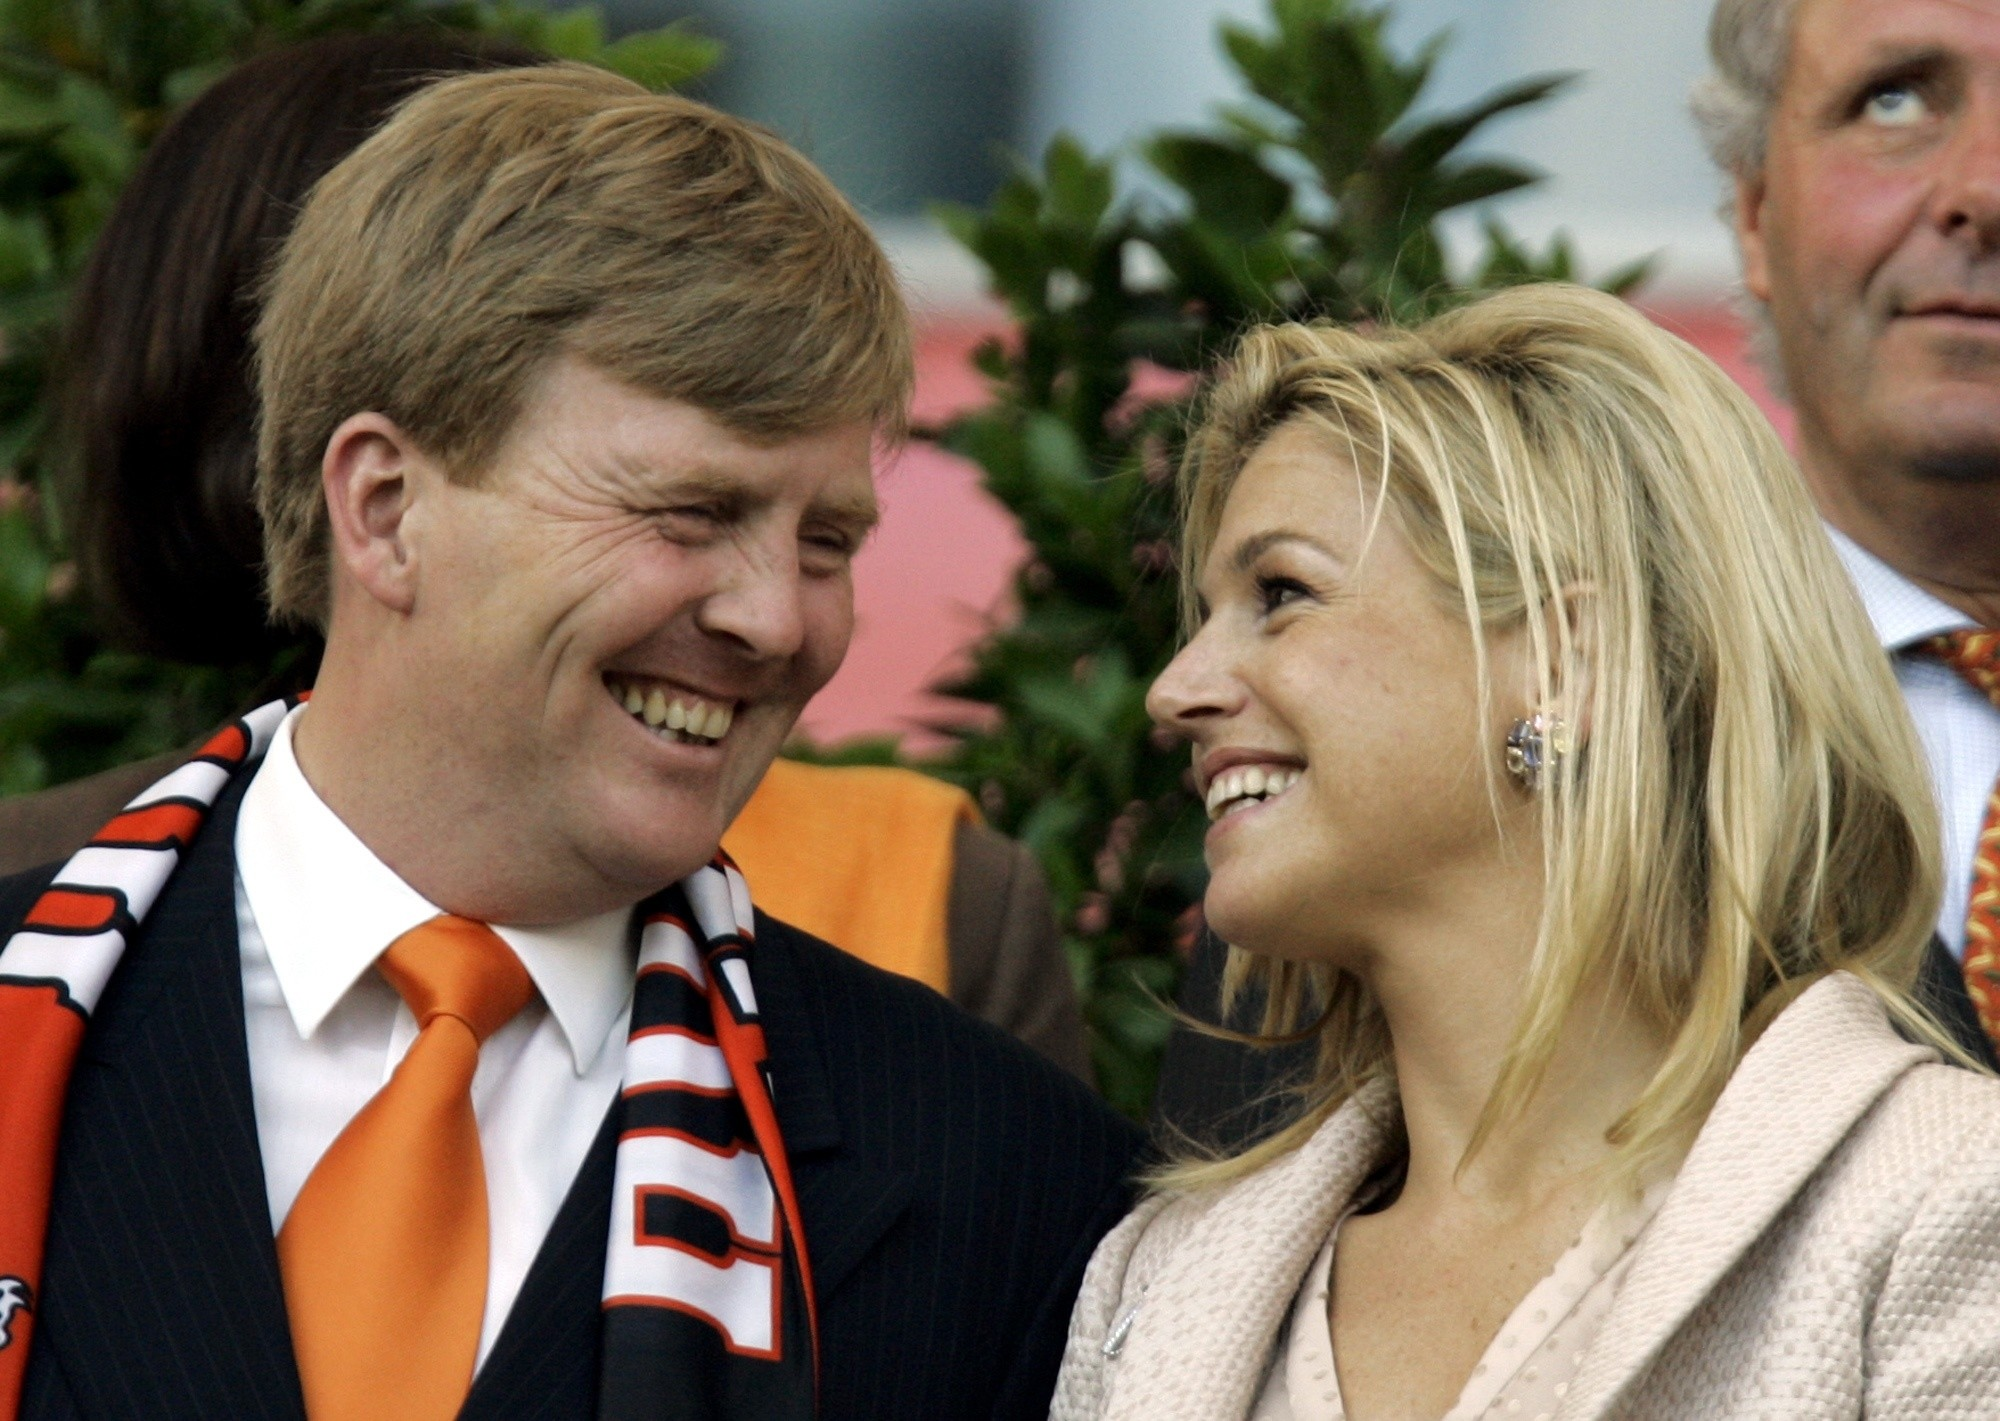 Netherlands' Prince Willem Alexander, left, and Princess Maxima wait for the beginning of the World Cup Group C soccer match between the Netherlands and Argentina. (AP Photo)